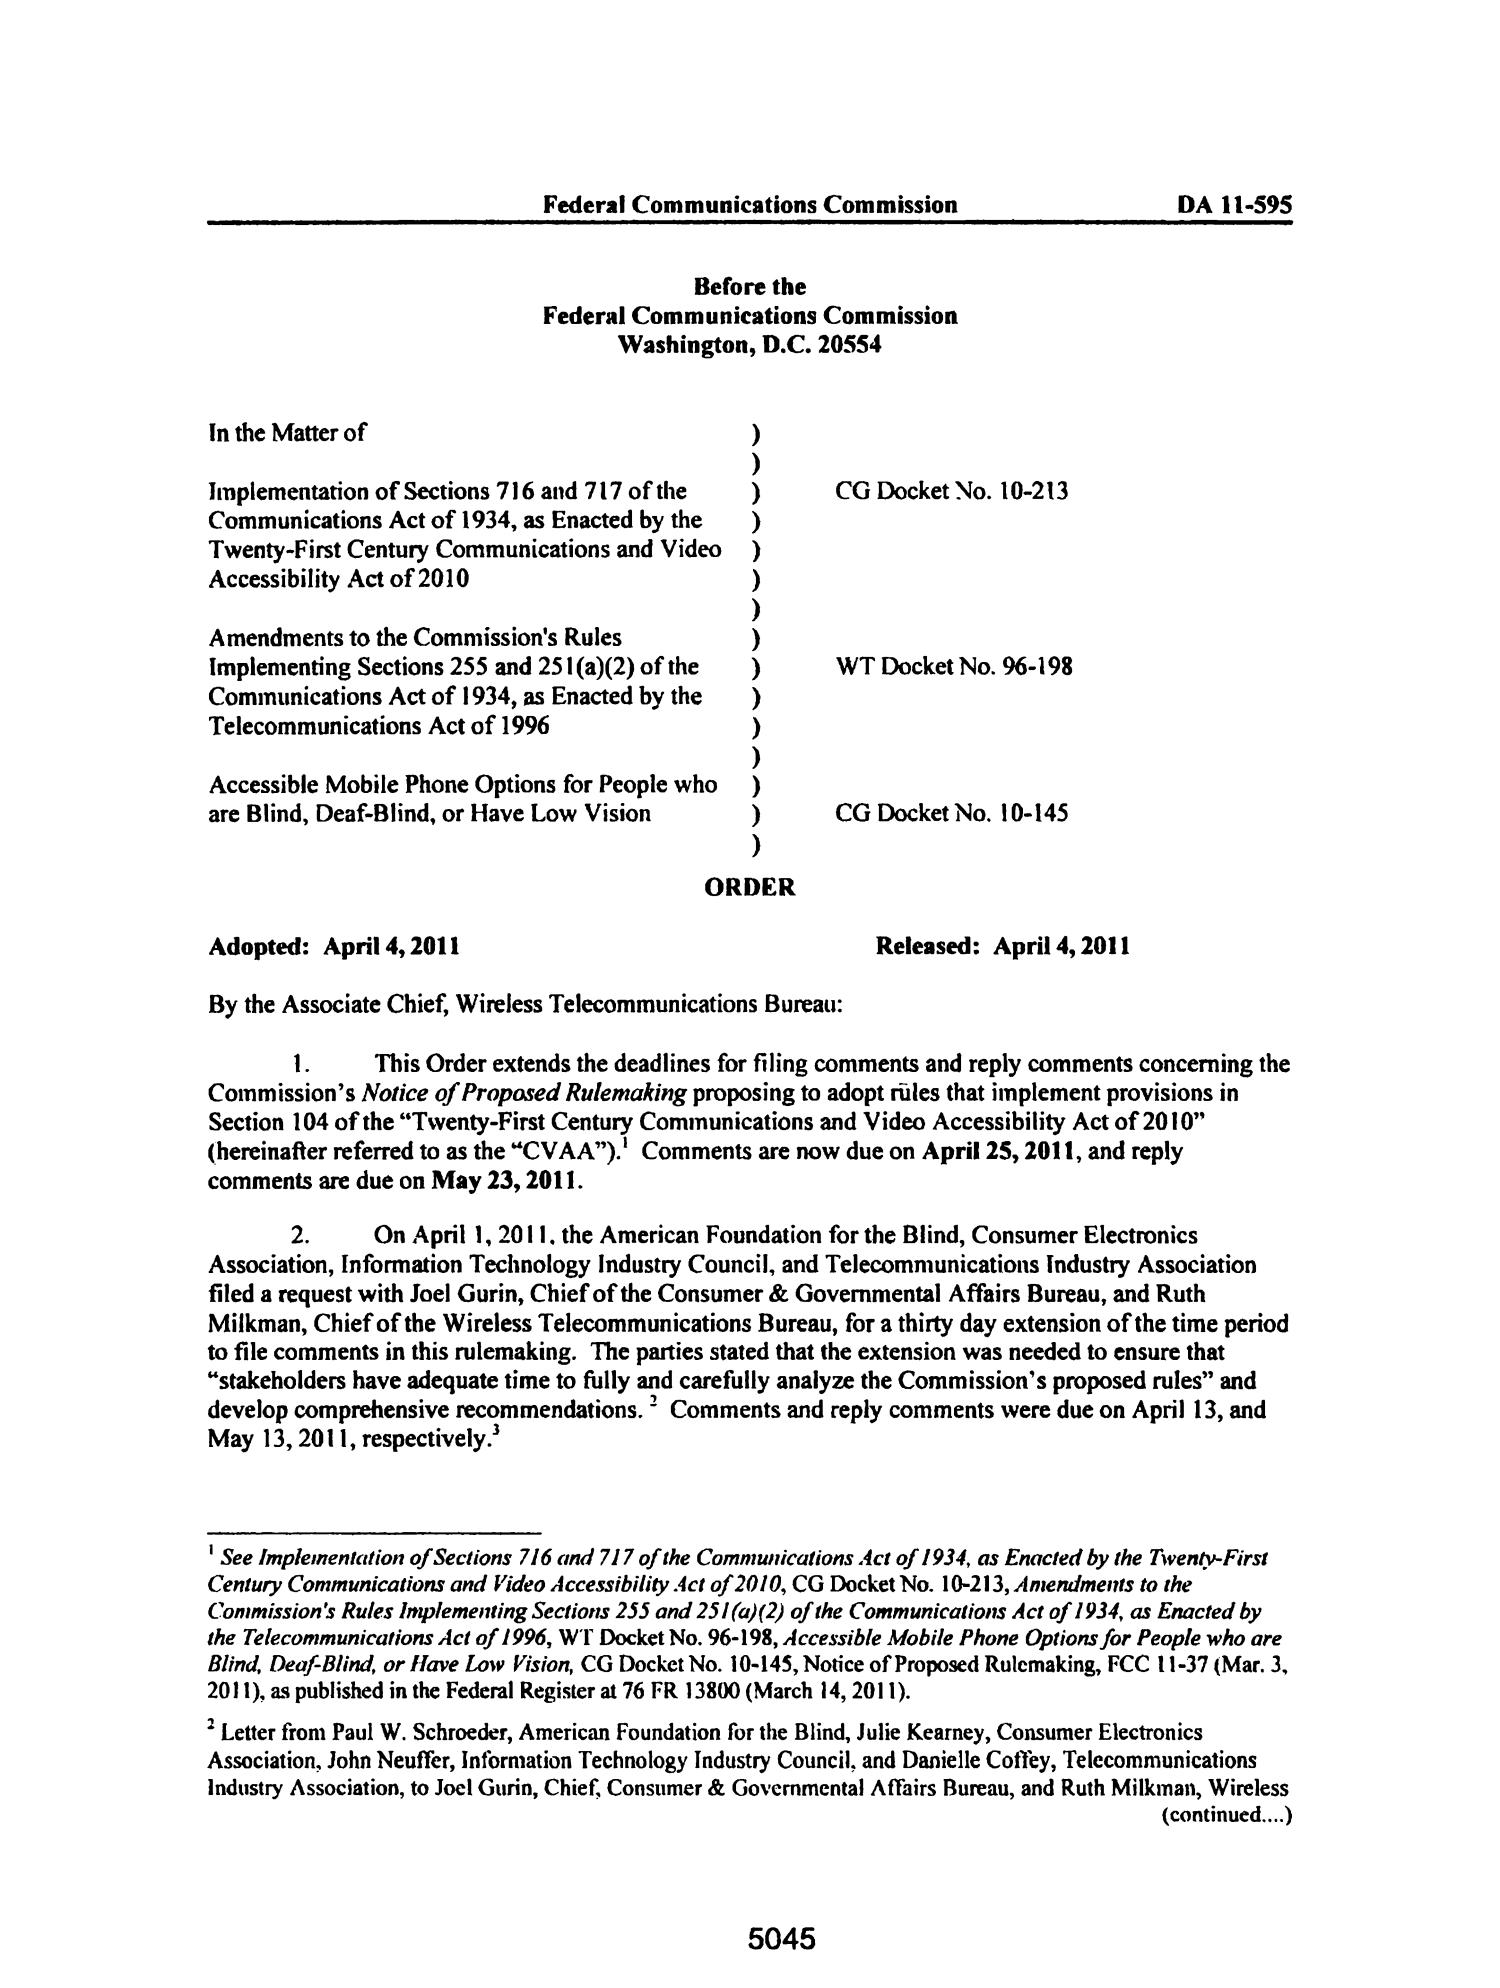 FCC Record, Volume 26, No. 7, Pages 4843 to 5761, March 28 - April 08, 2011                                                                                                      5045